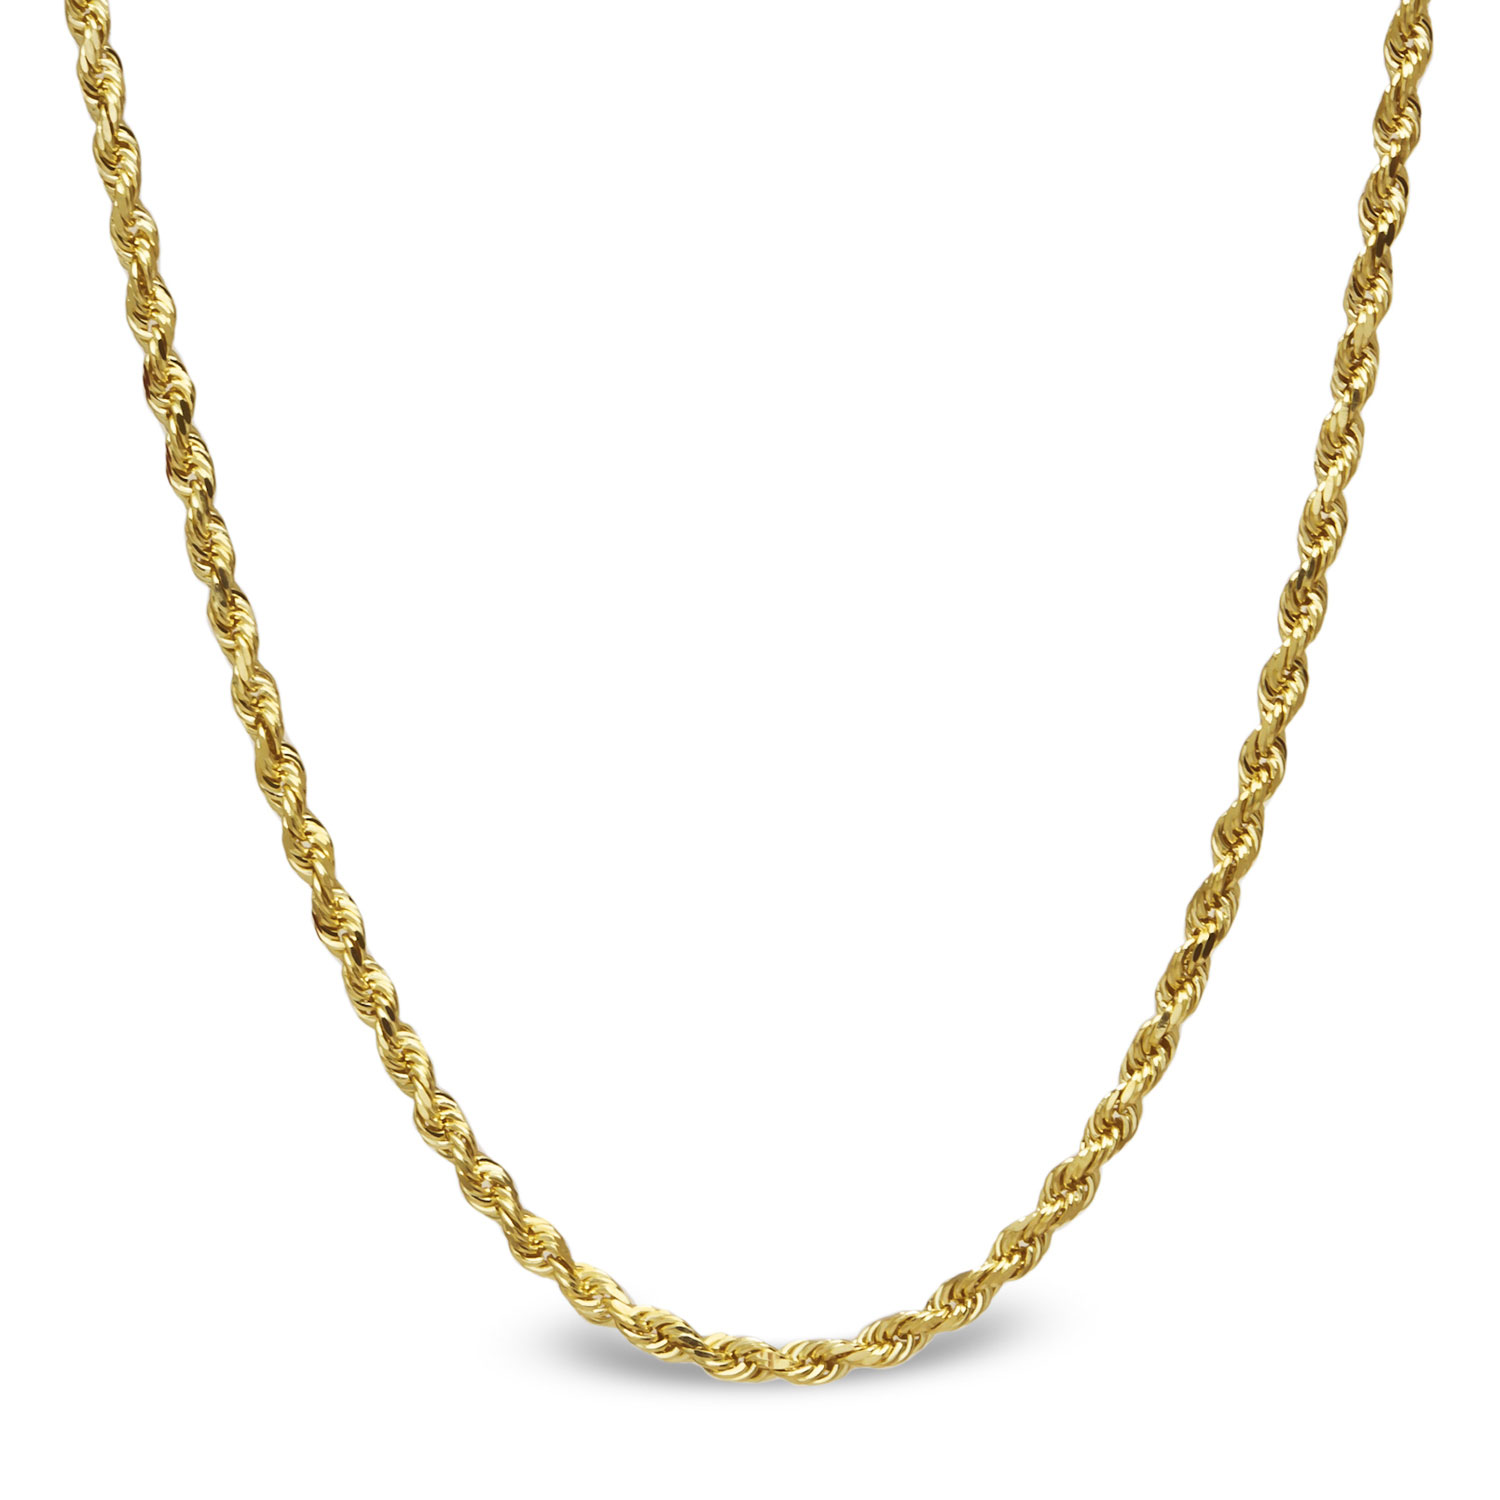 14k Gold Diamond Cut Rope Necklace - 16 in.